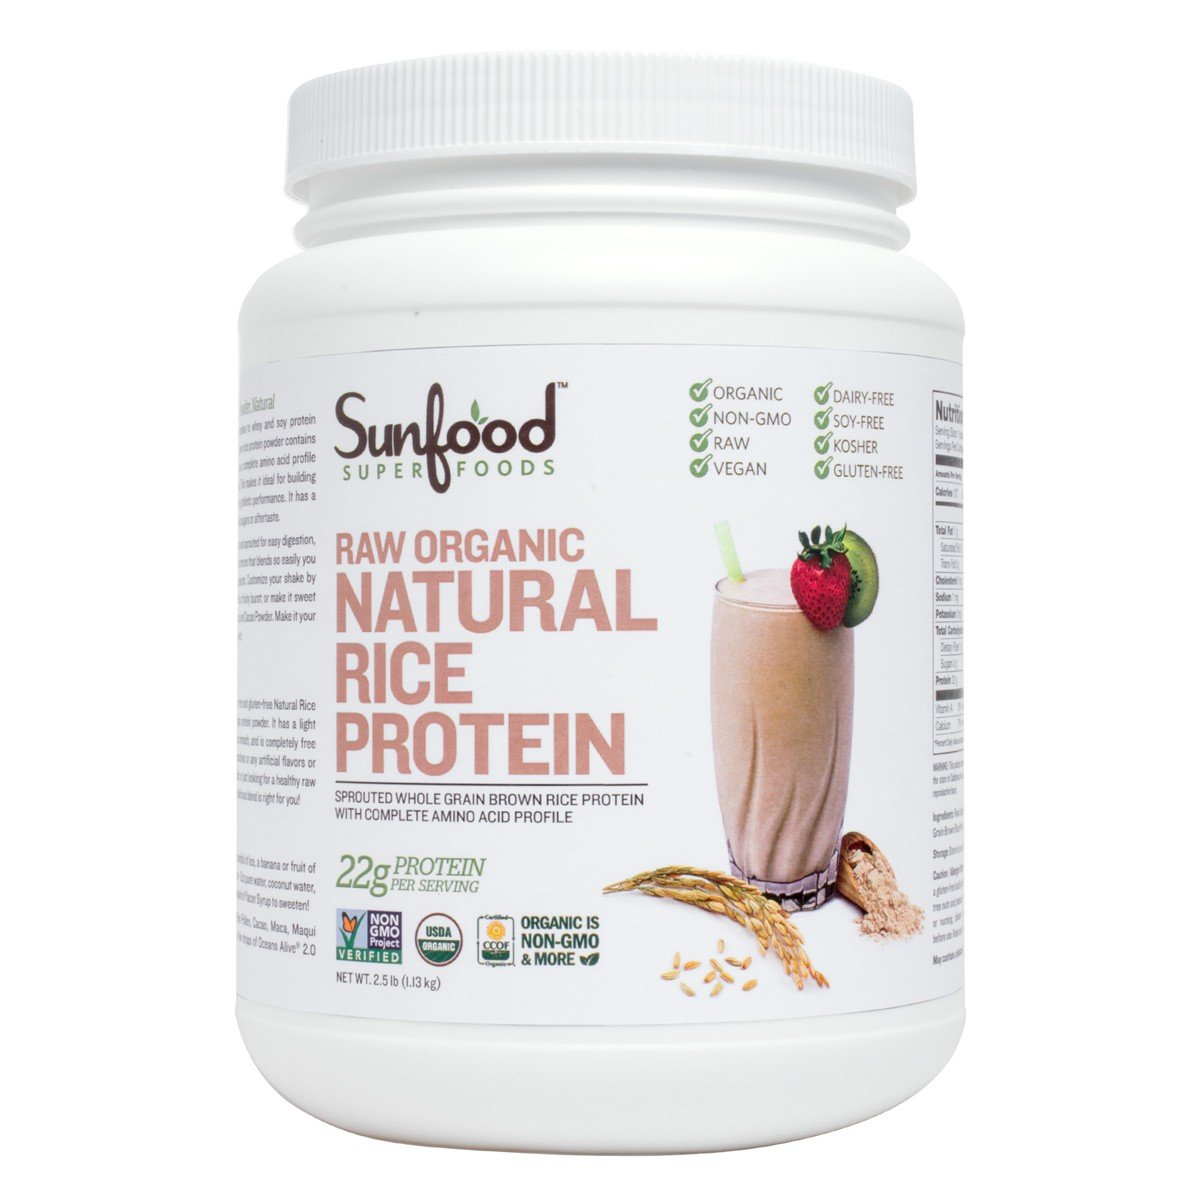 Sunfood Organic Rice Protein Powder- Natural, Unflavored. Bulk Value. 22 Grams of Protein. 2.5 lb Tub